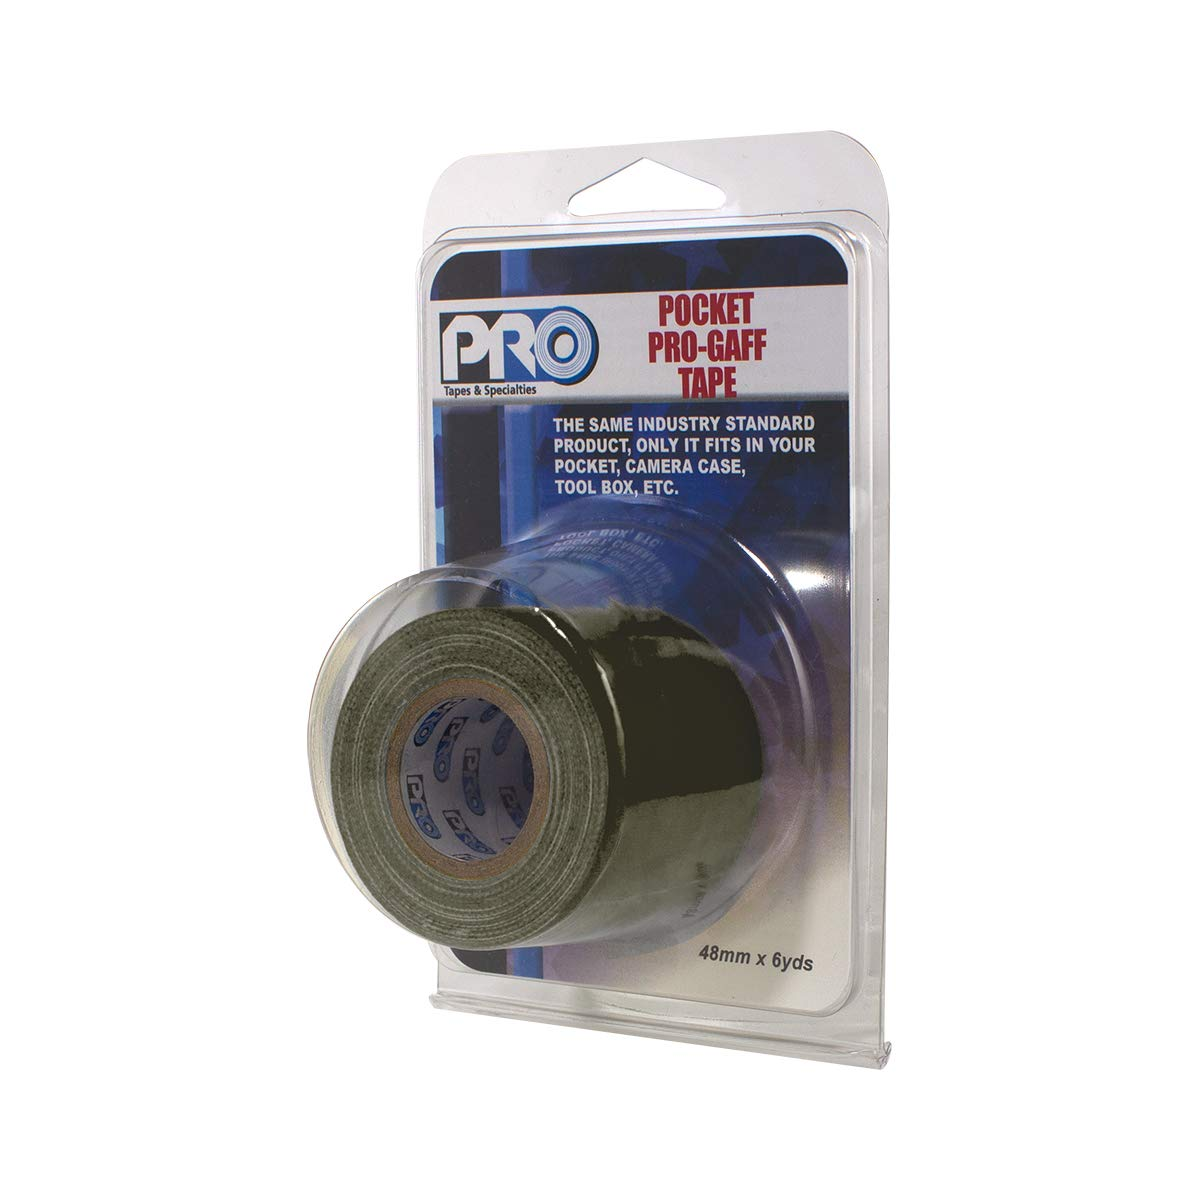 Made in The USA 48mm Holds Tight Pocket Size Gaffers Tape Easy to Remove. x 6 Yards Length Olive drab Matte Pro Tapes Pocket Gaff Tape 2 inch